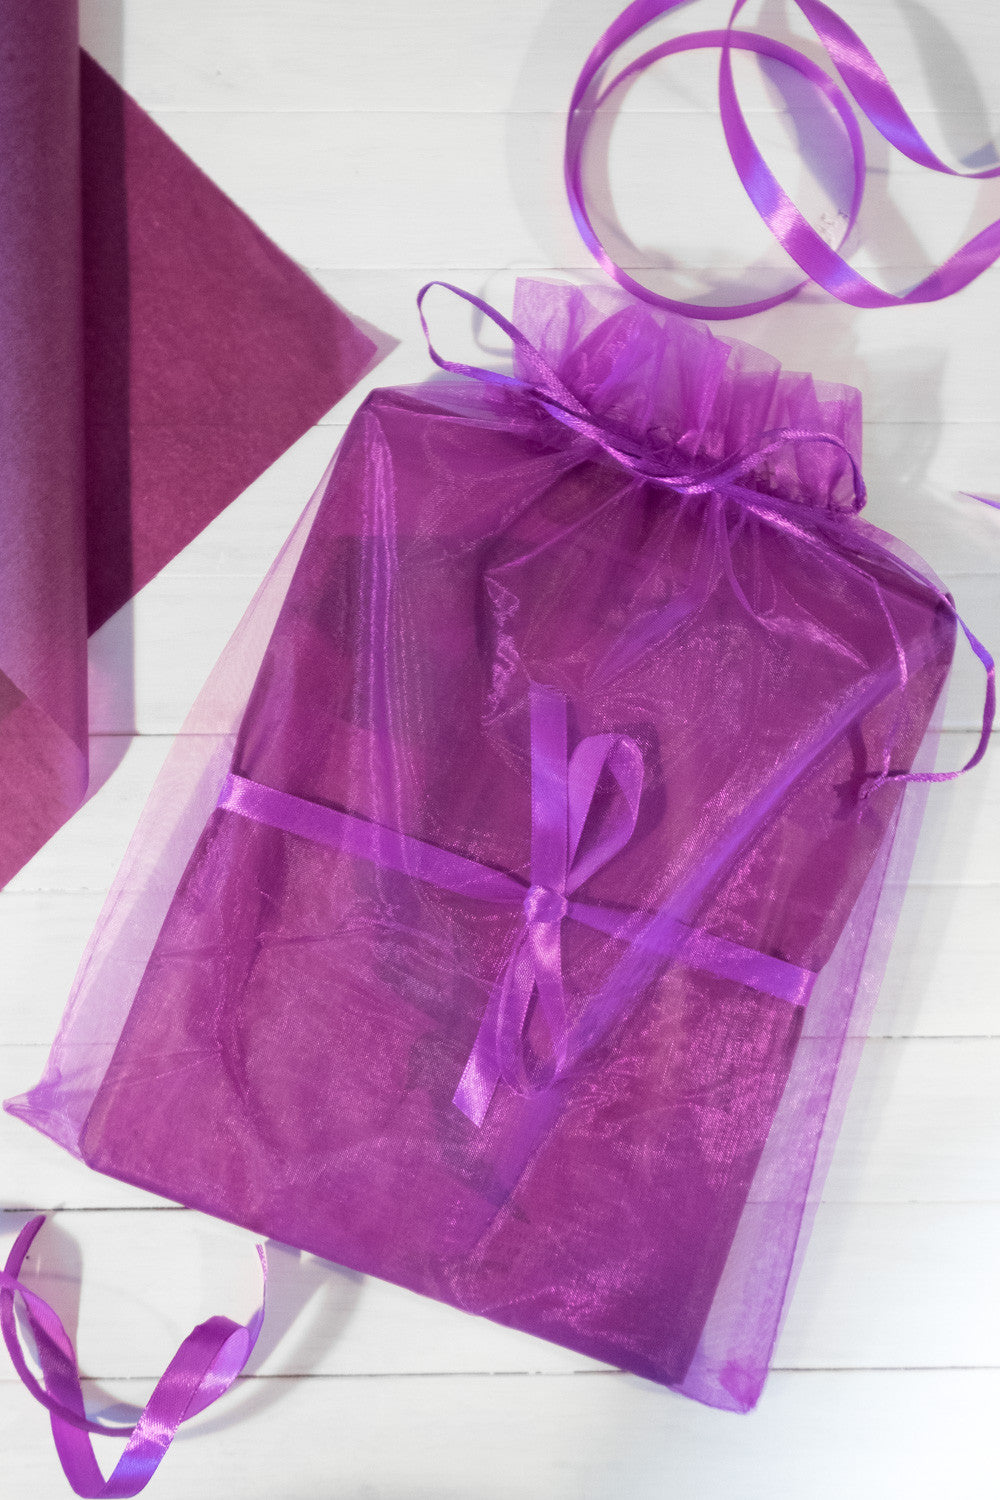 Organza Gift and Storage Bag - Mayfair Stockings - Mayfair - Extras - 1